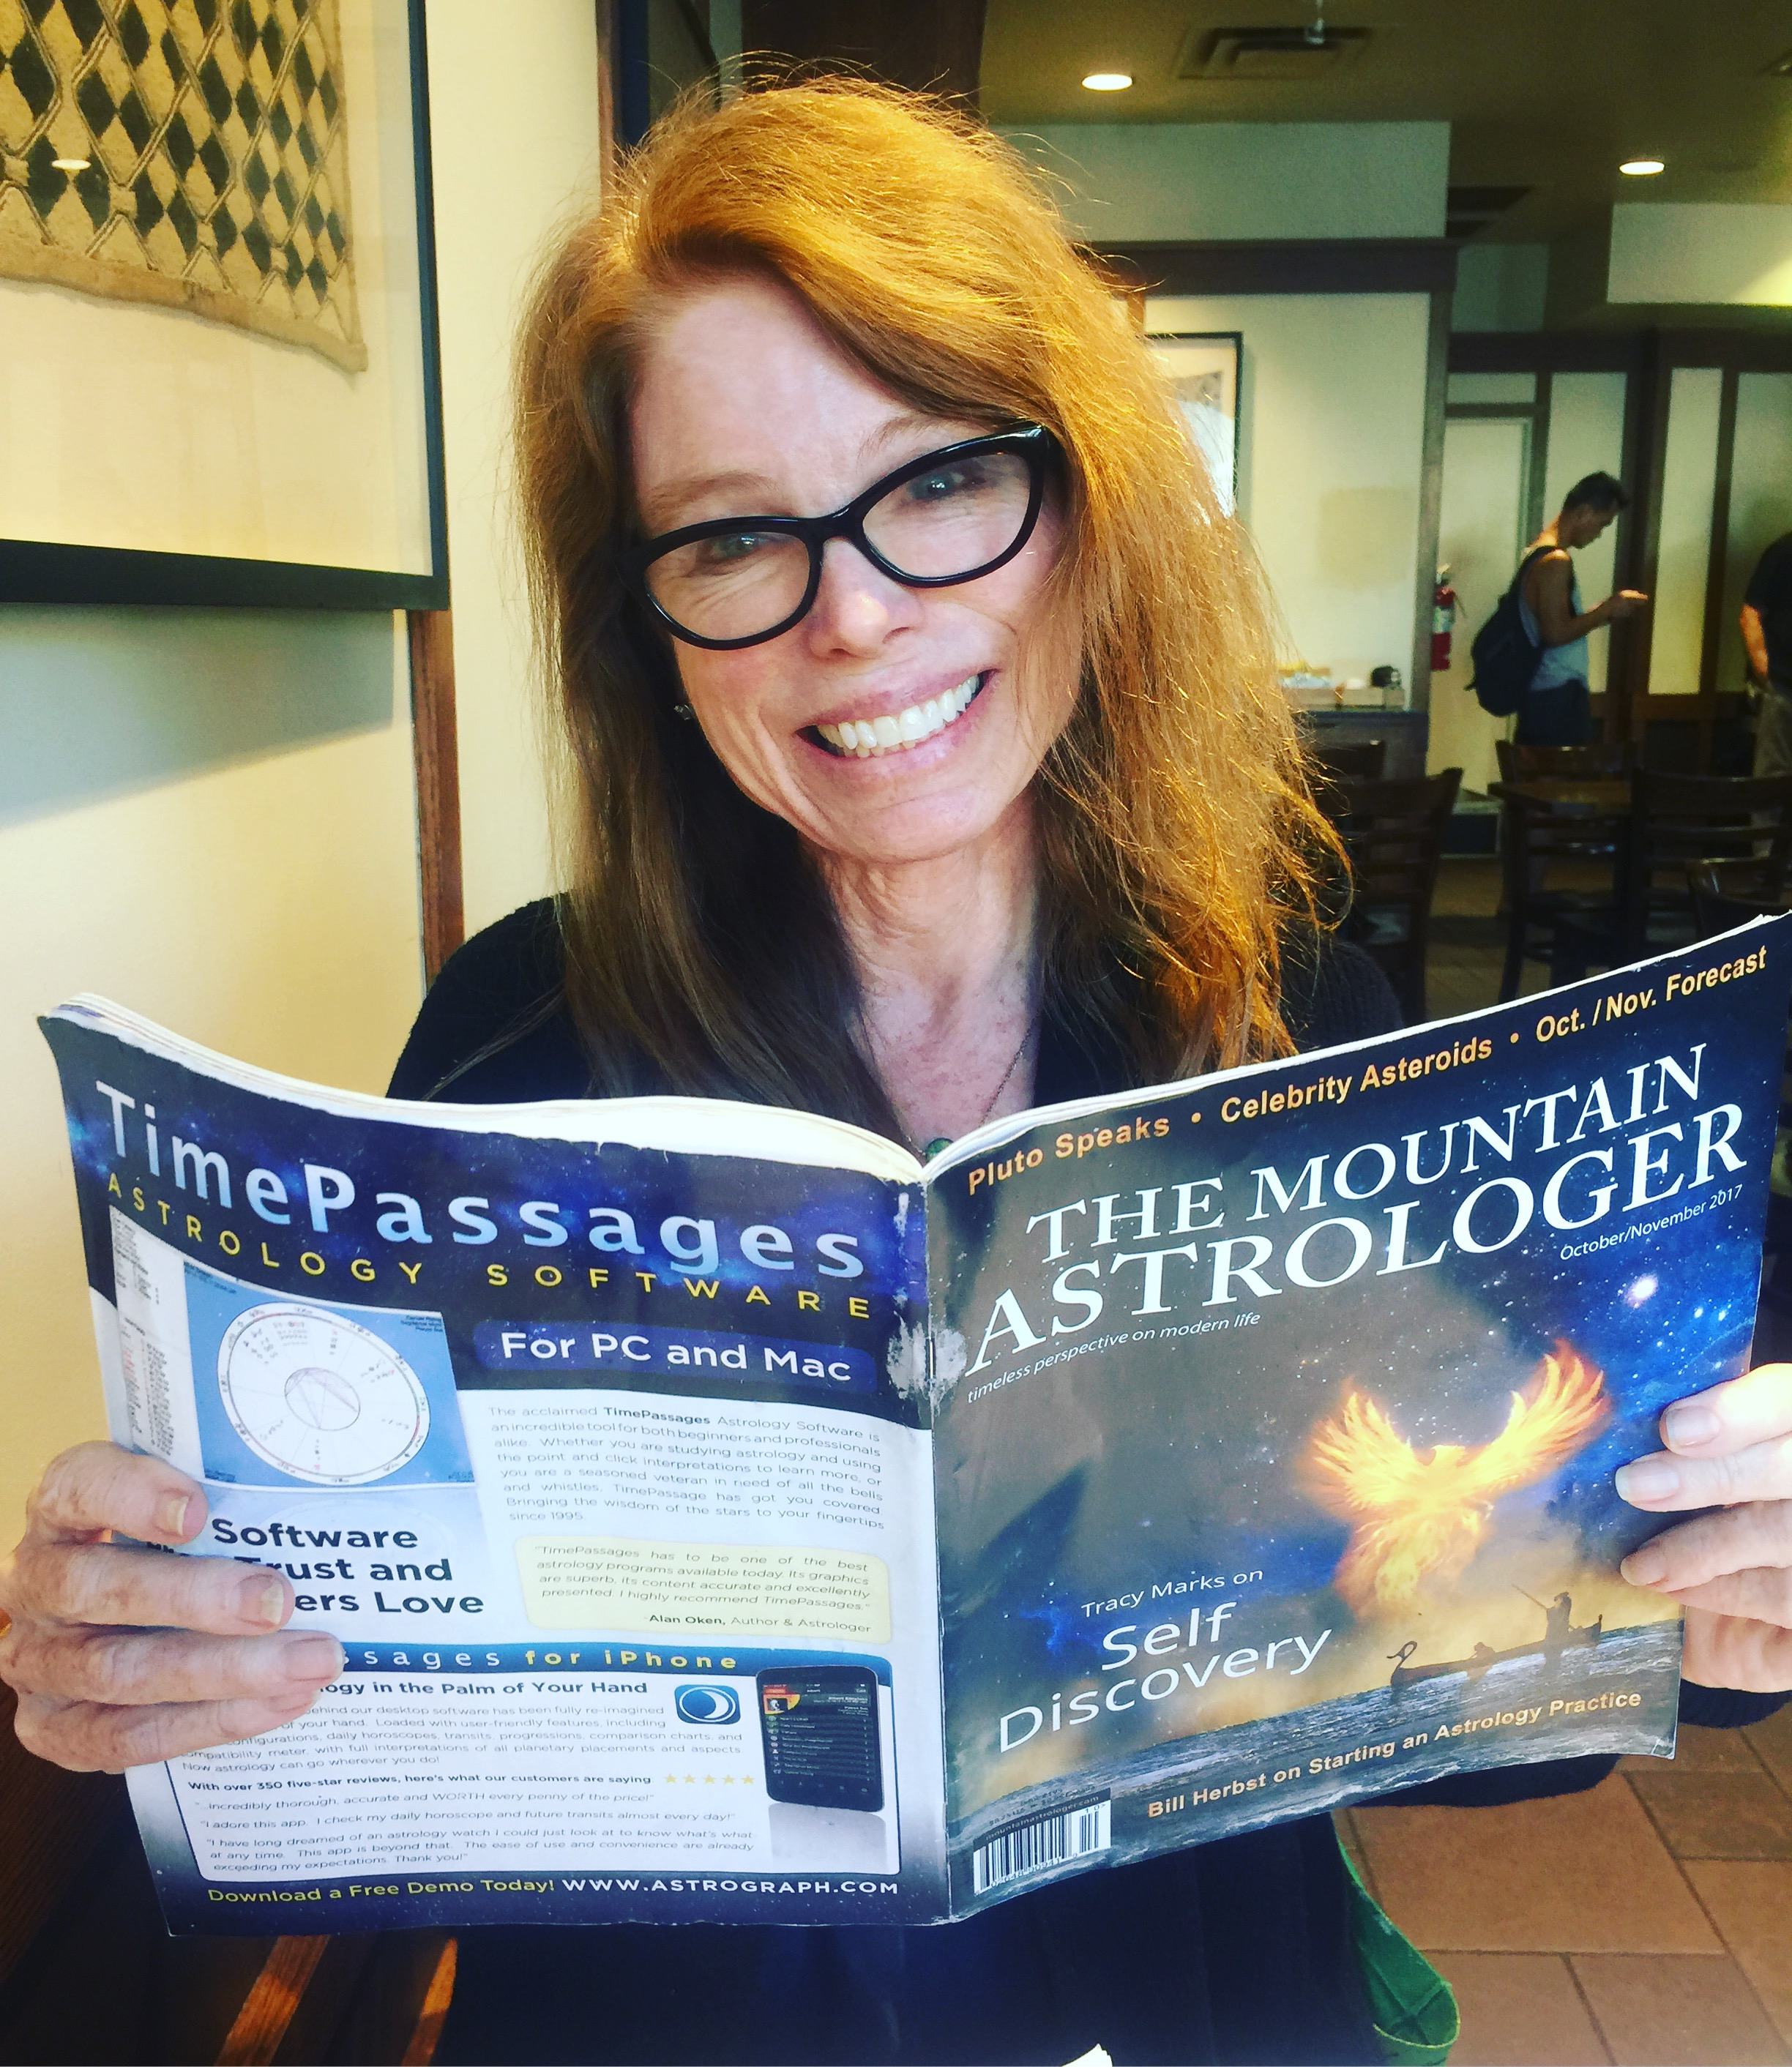 About Me — The Astrologer's Daughter